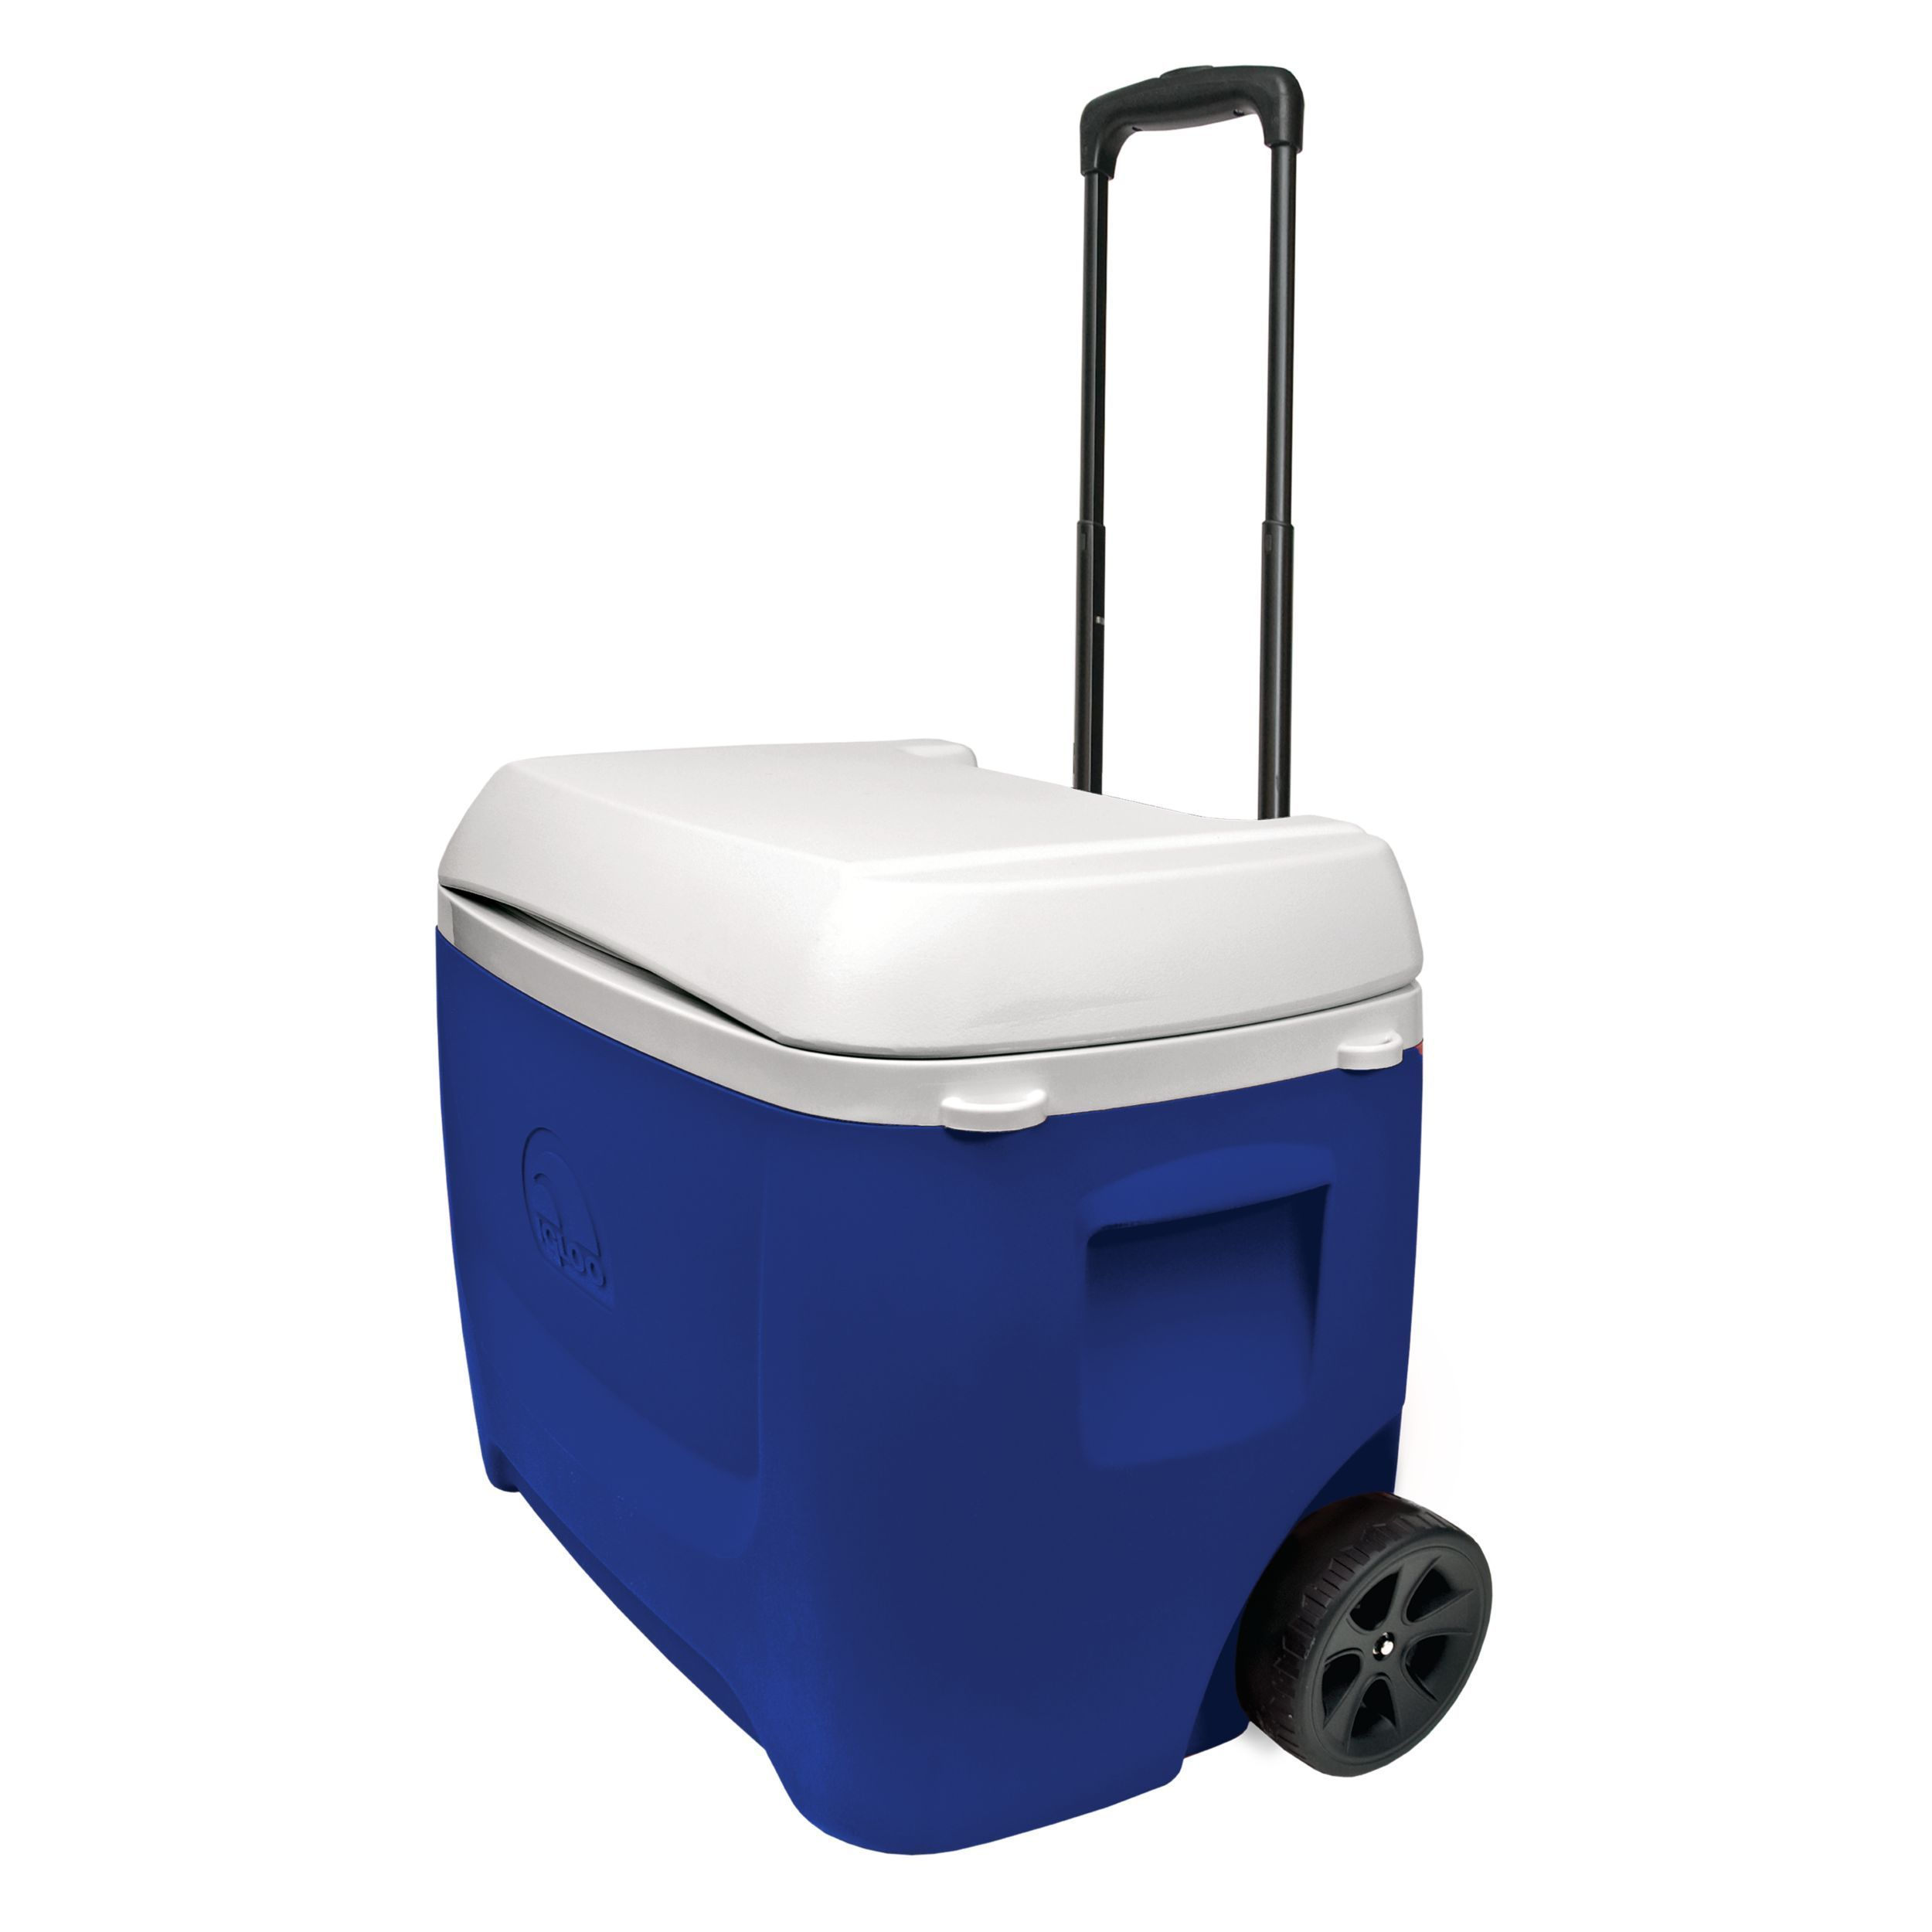 Igloo 45813 60-quart Island Breeze Roller Cooler Blue (Bl...